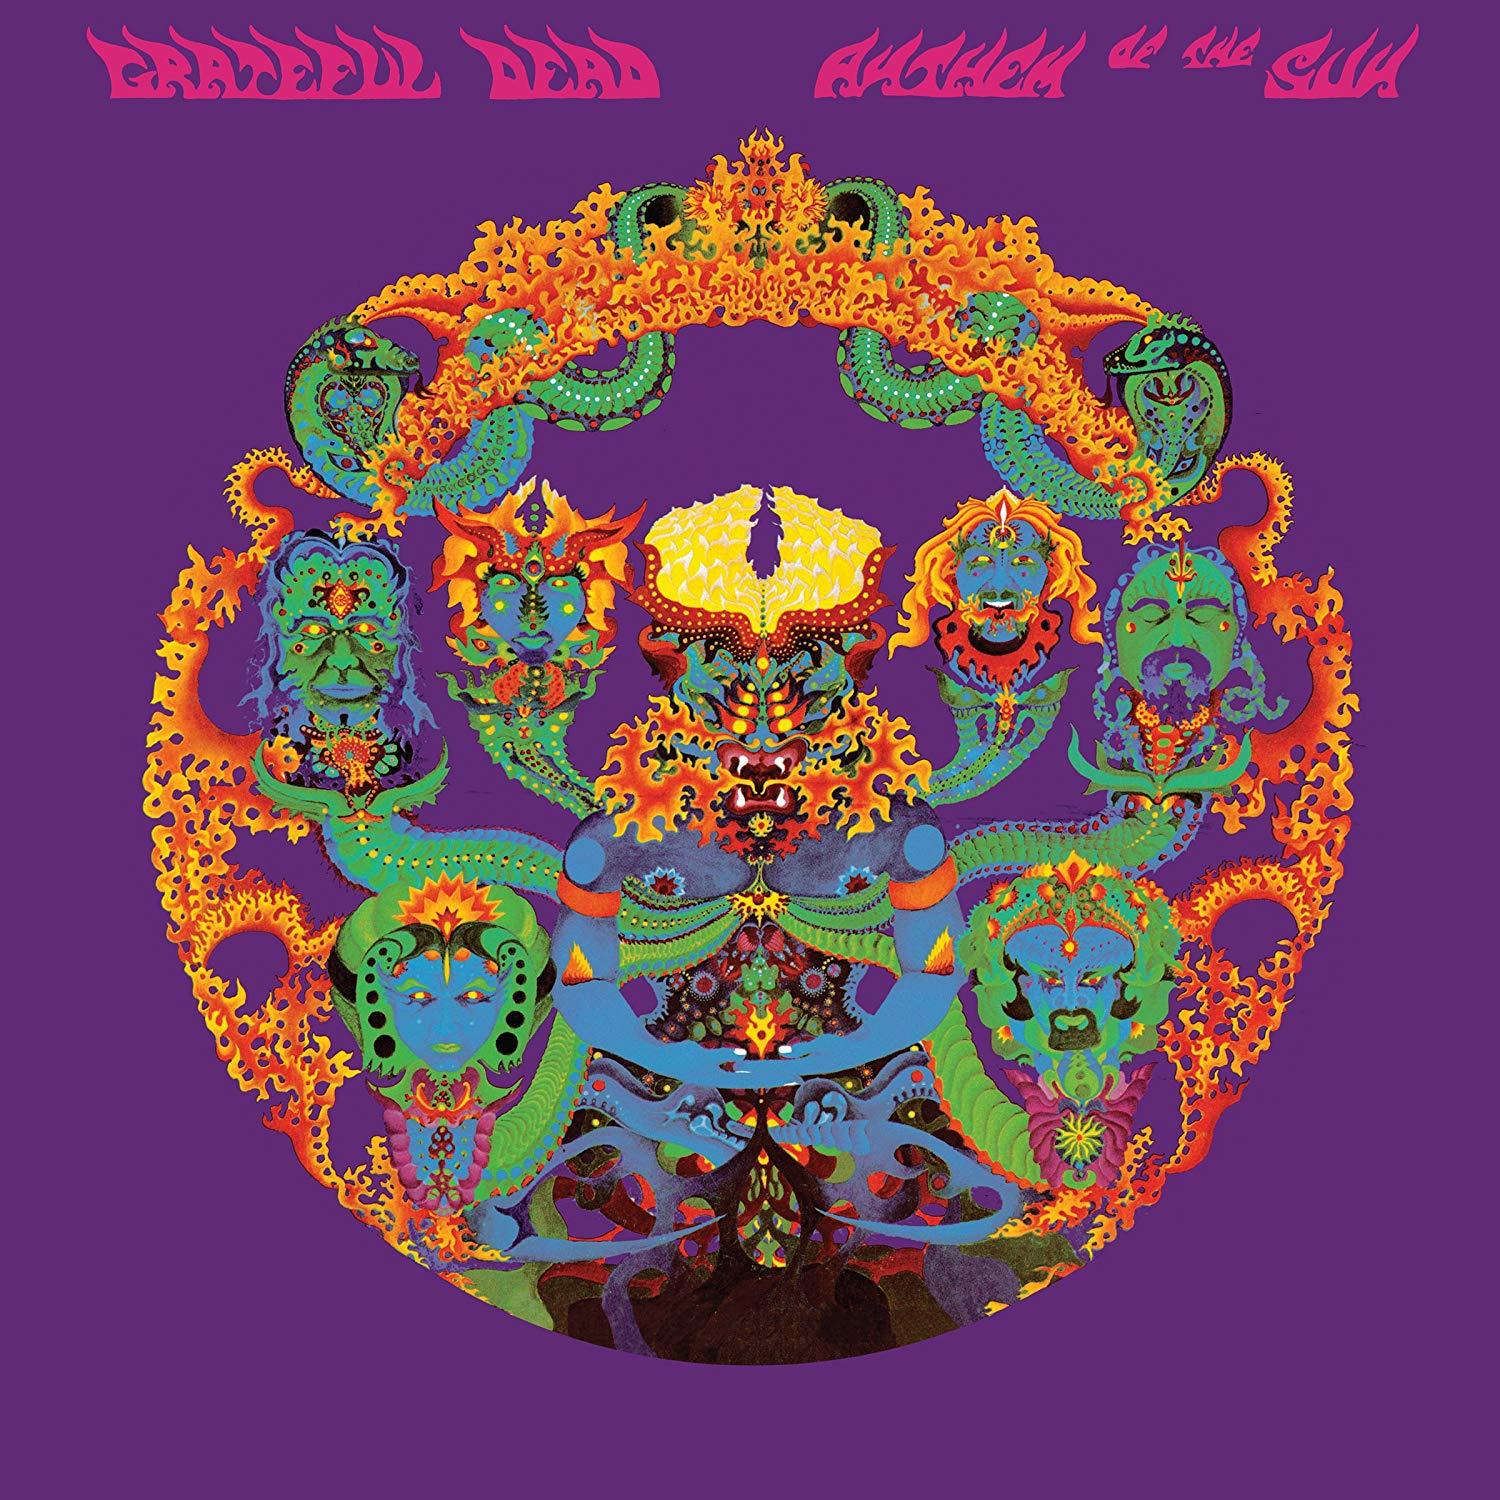 Anthem Of The Sun (50Th Anniversary Deluxe Edition) by Grateful Dead image